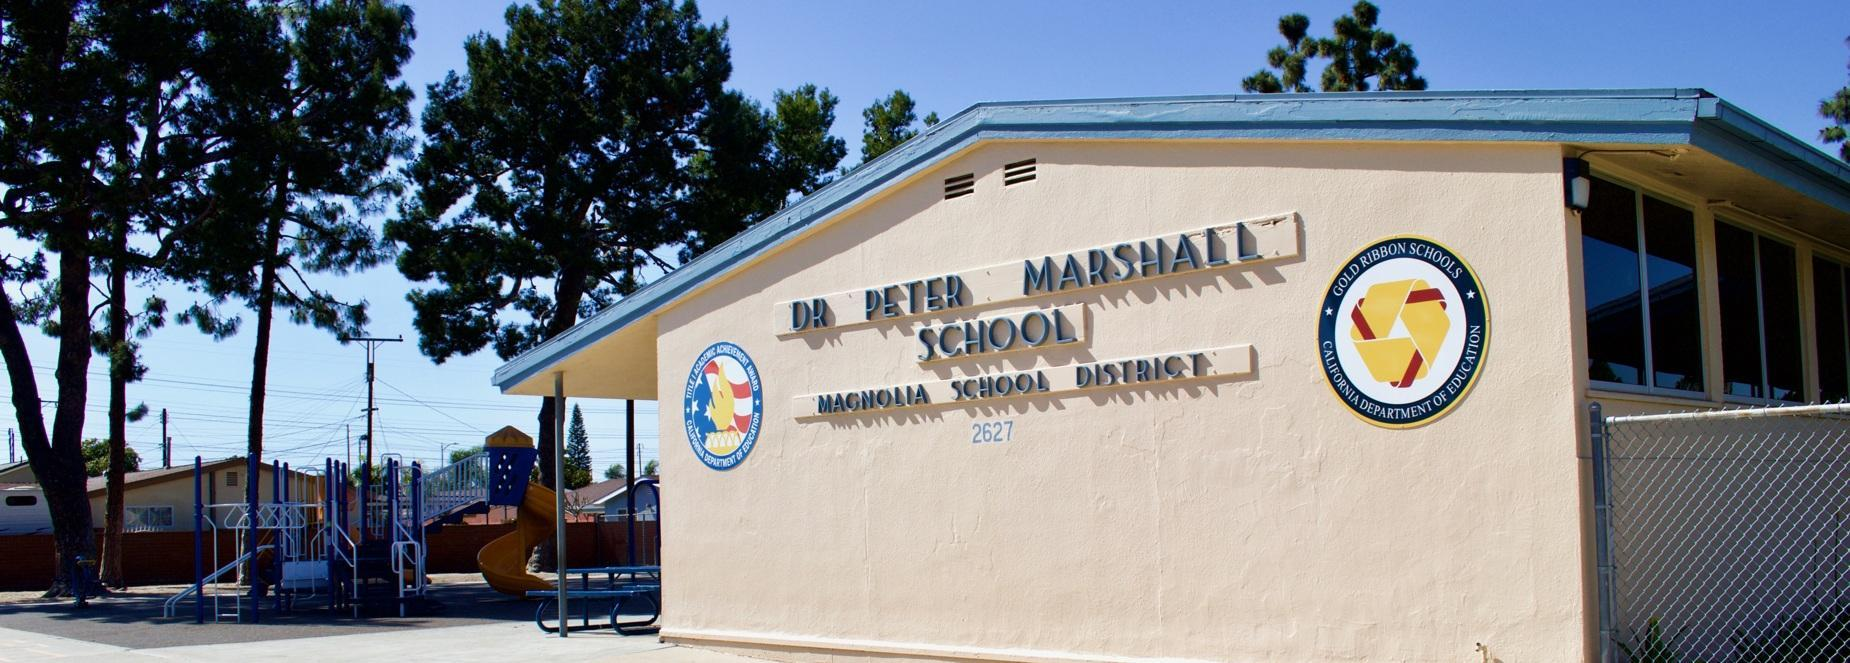 Dr. Peter Marshall School